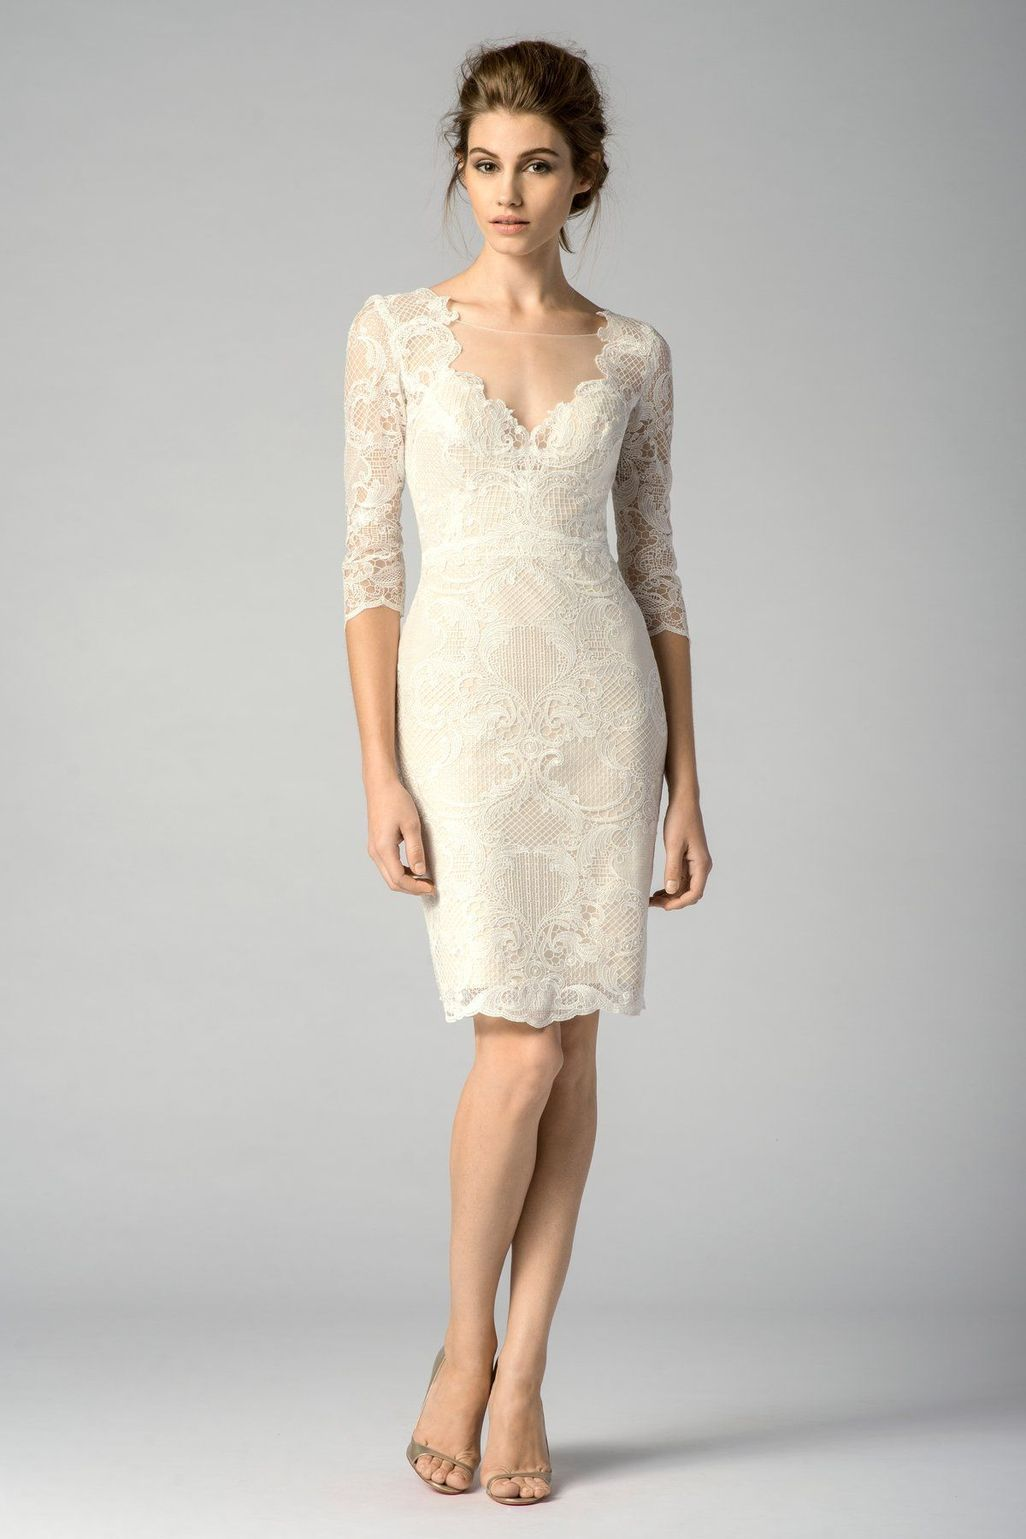 Cool short wedding dresses ideas for your wedding day more at